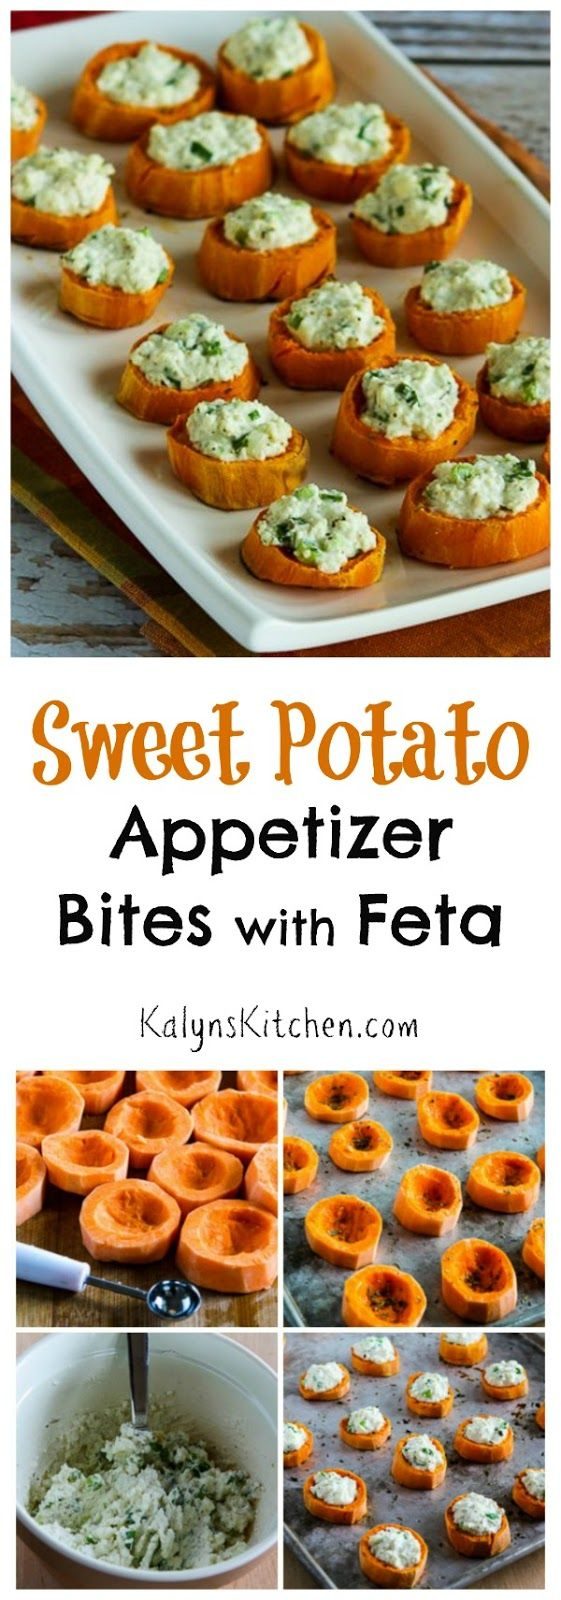 They look a bit fancy, but these Sweet Potato Appetizer Bites with Feta and Green Onion are delicious and easy to make.  These are perfect for the holidays or a healthier nibble while watcing sports.  [found on KalynsKitchen.com]